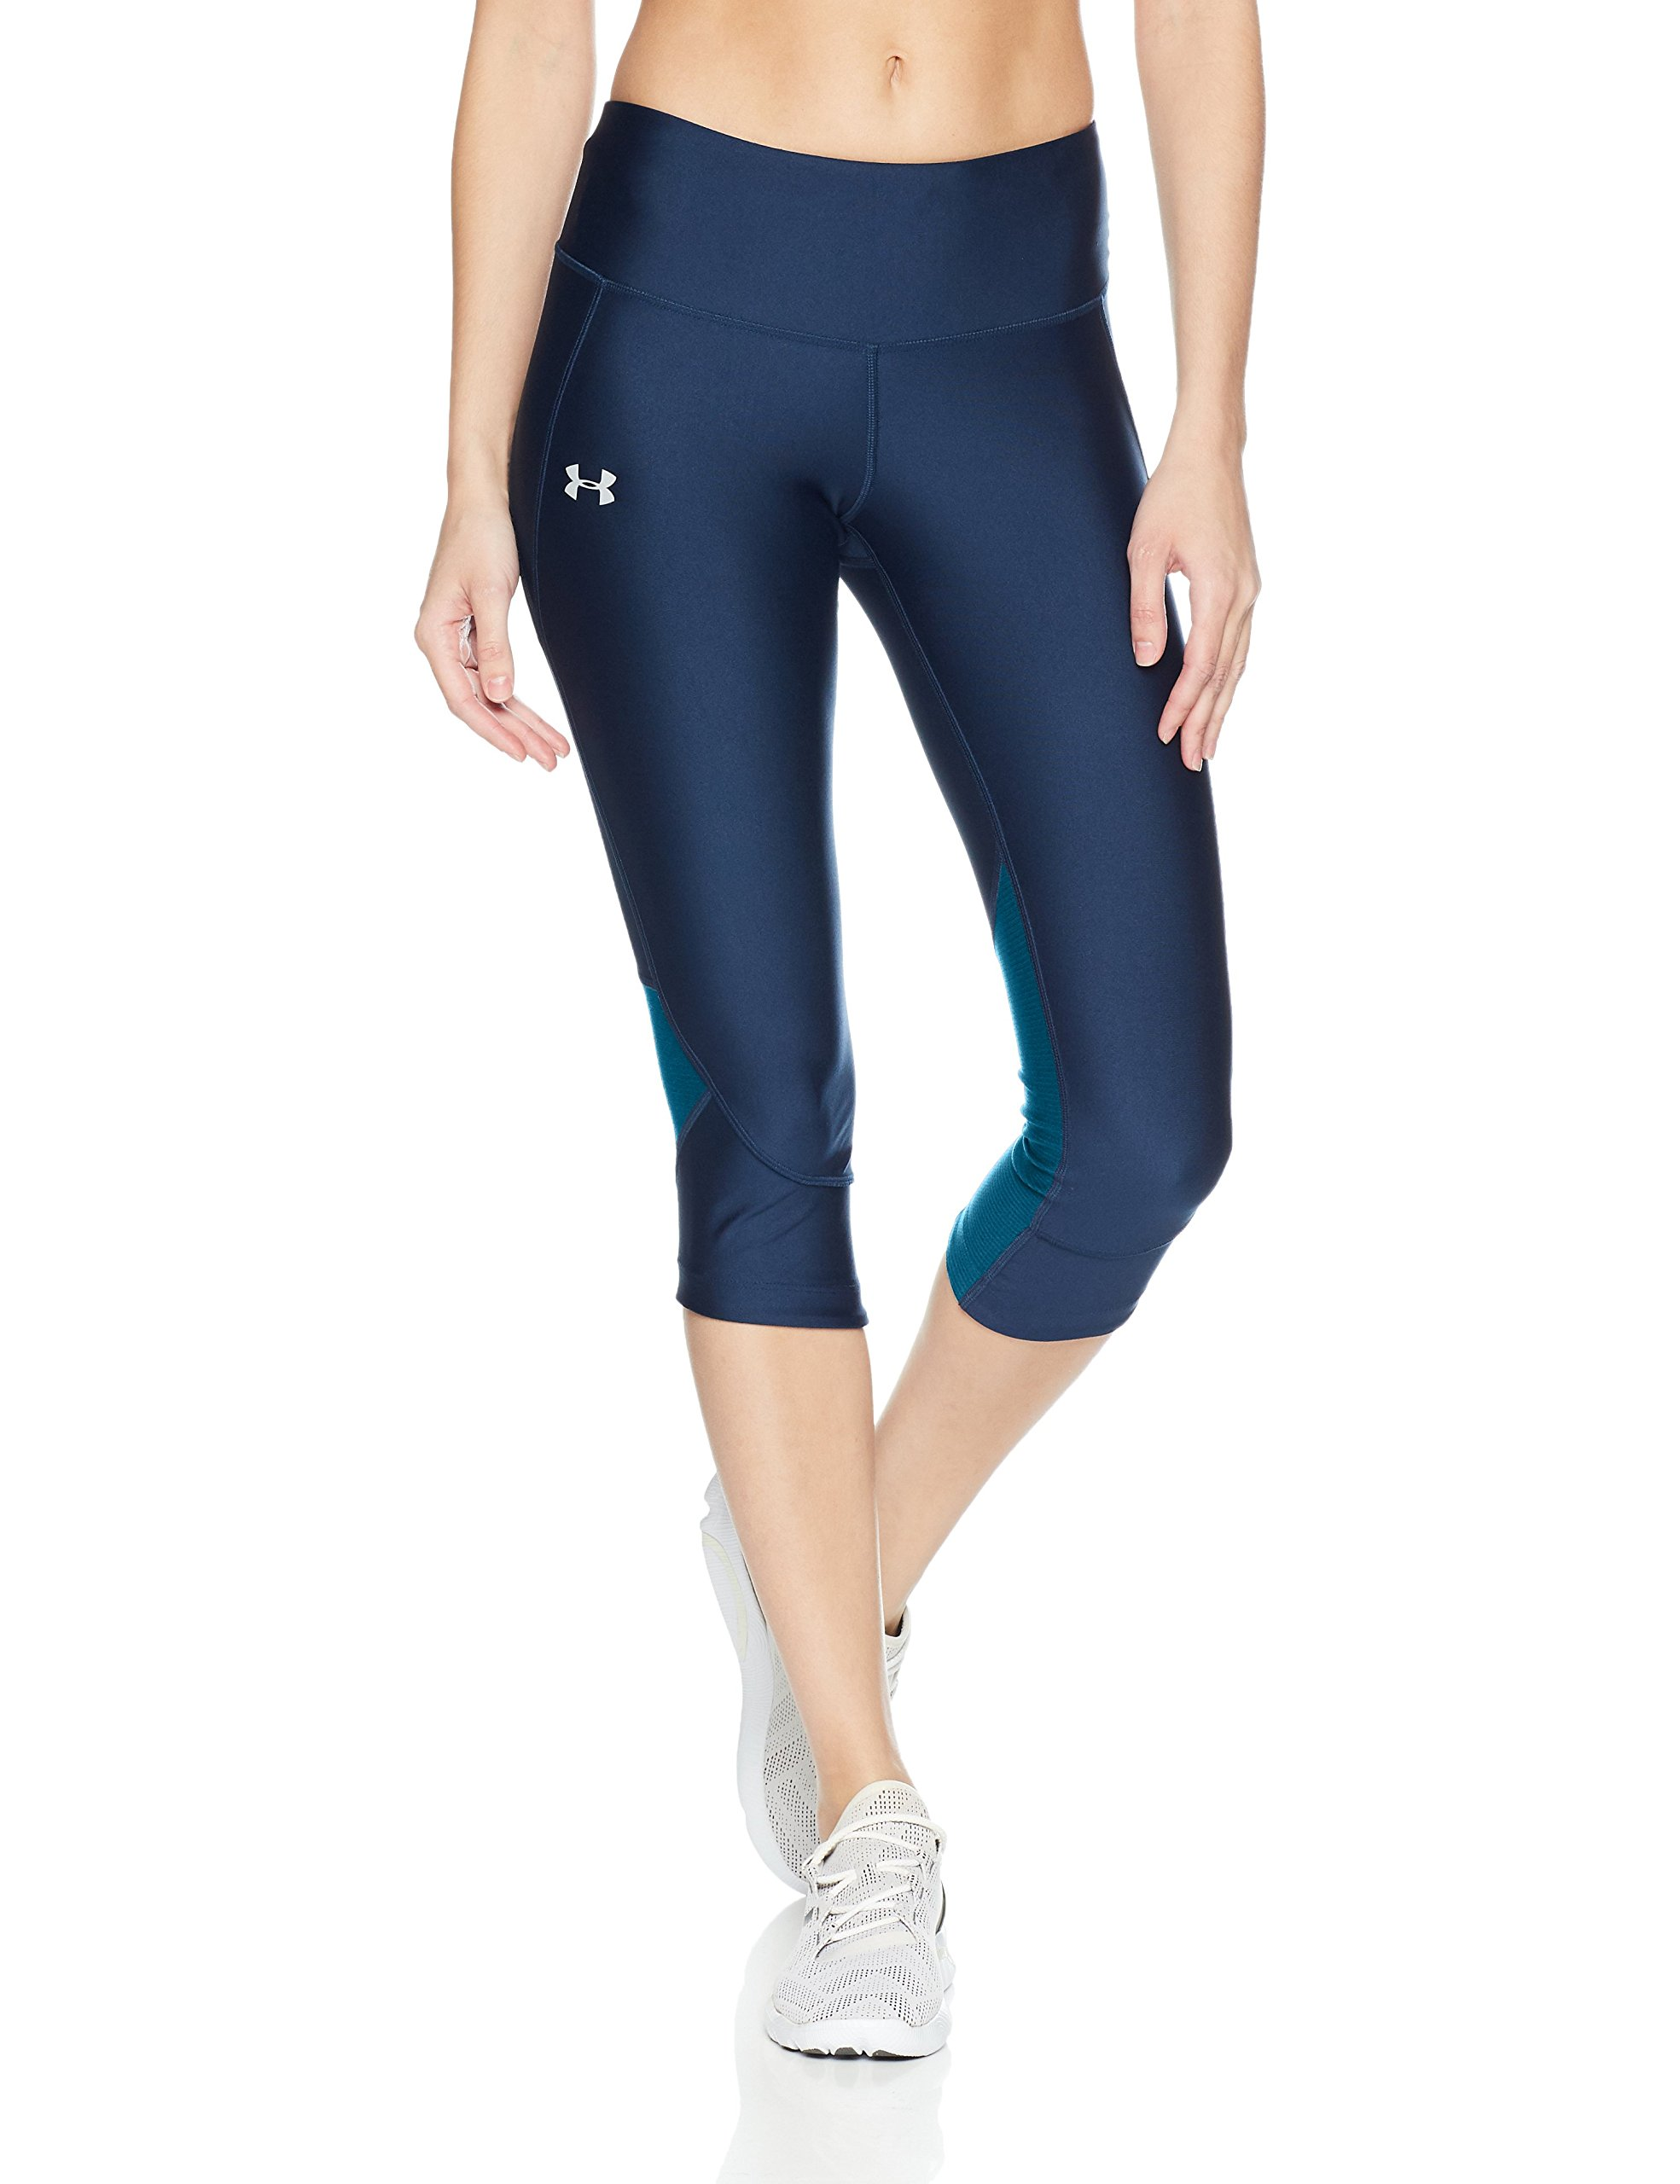 Under Armour Women's Armour Fly Fast Capris, Academy /Reflective, Small by Under Armour